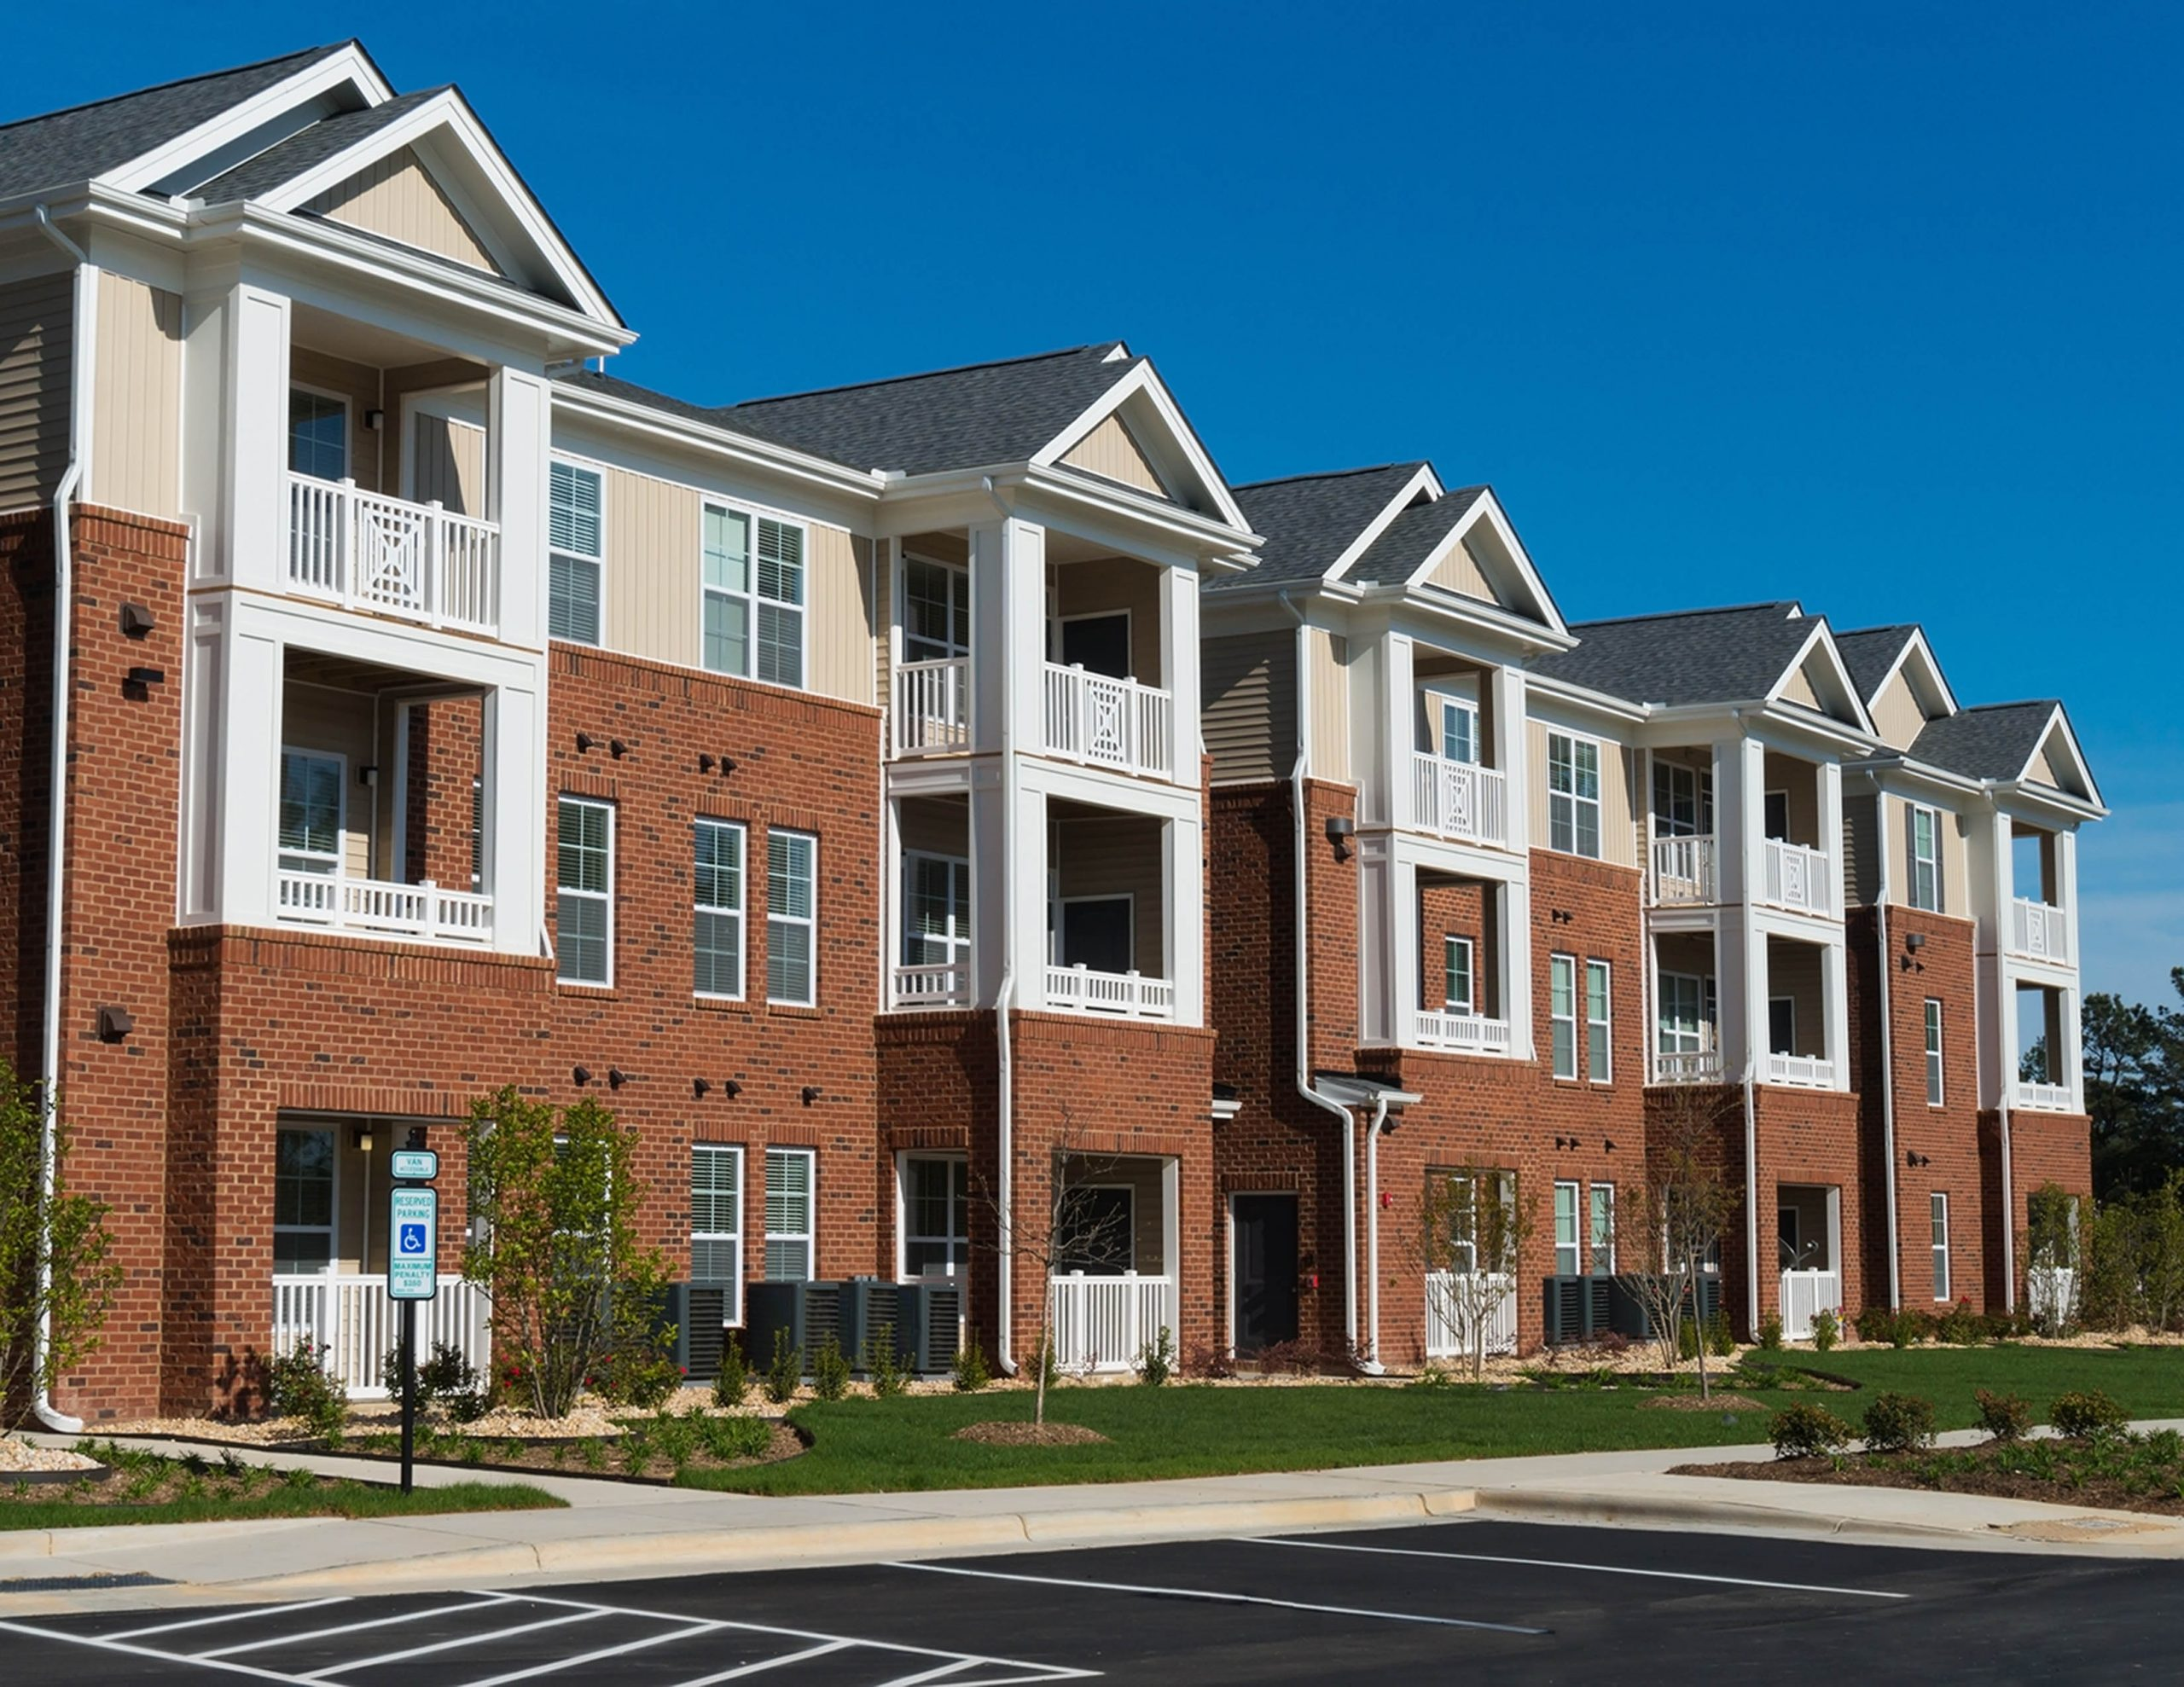 Multi-Family Building Class Definitions